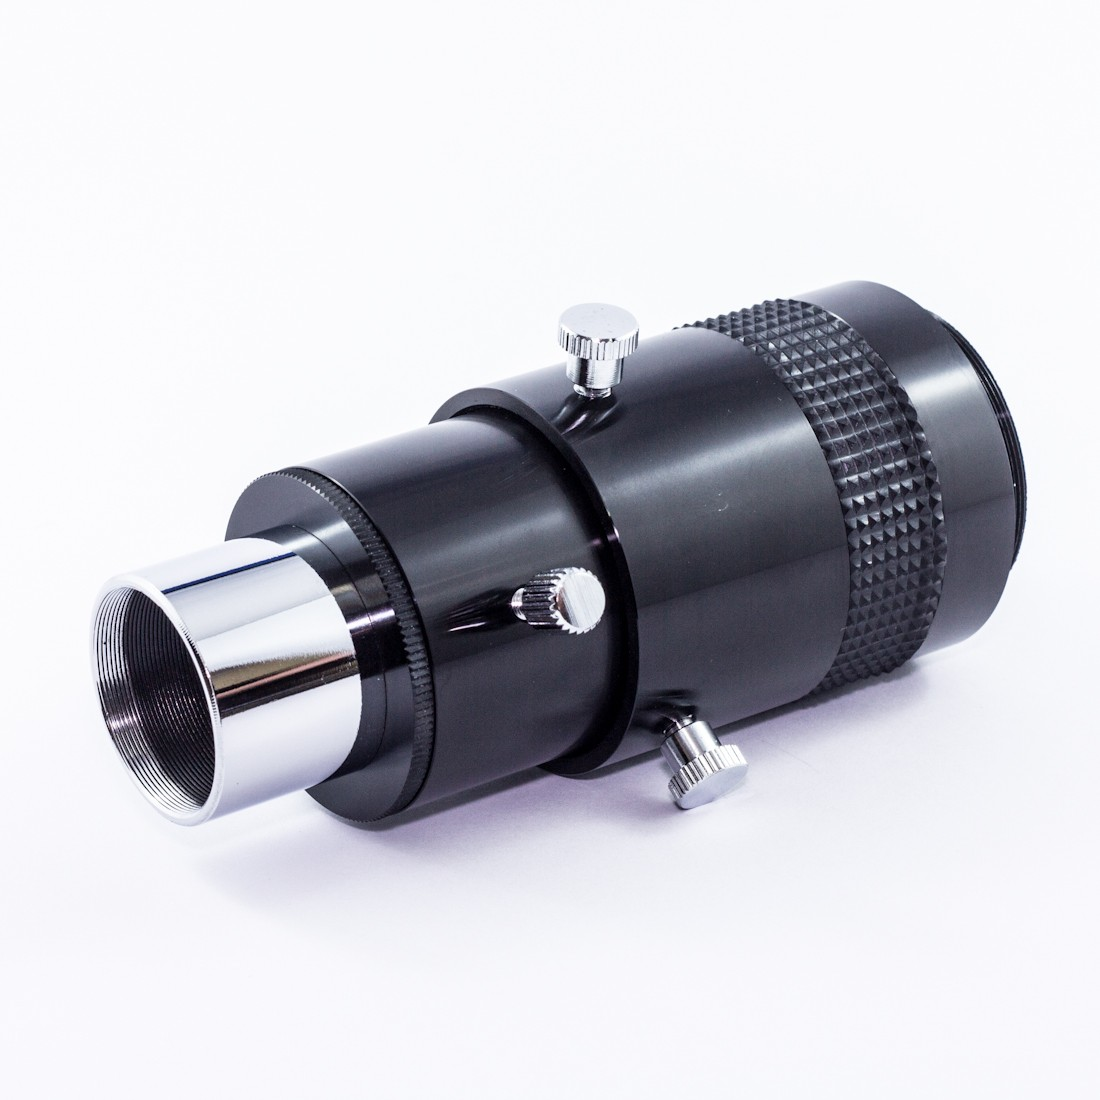 Sirius 1.25in Deluxe Adjustable Eyepiece Projection Adapter